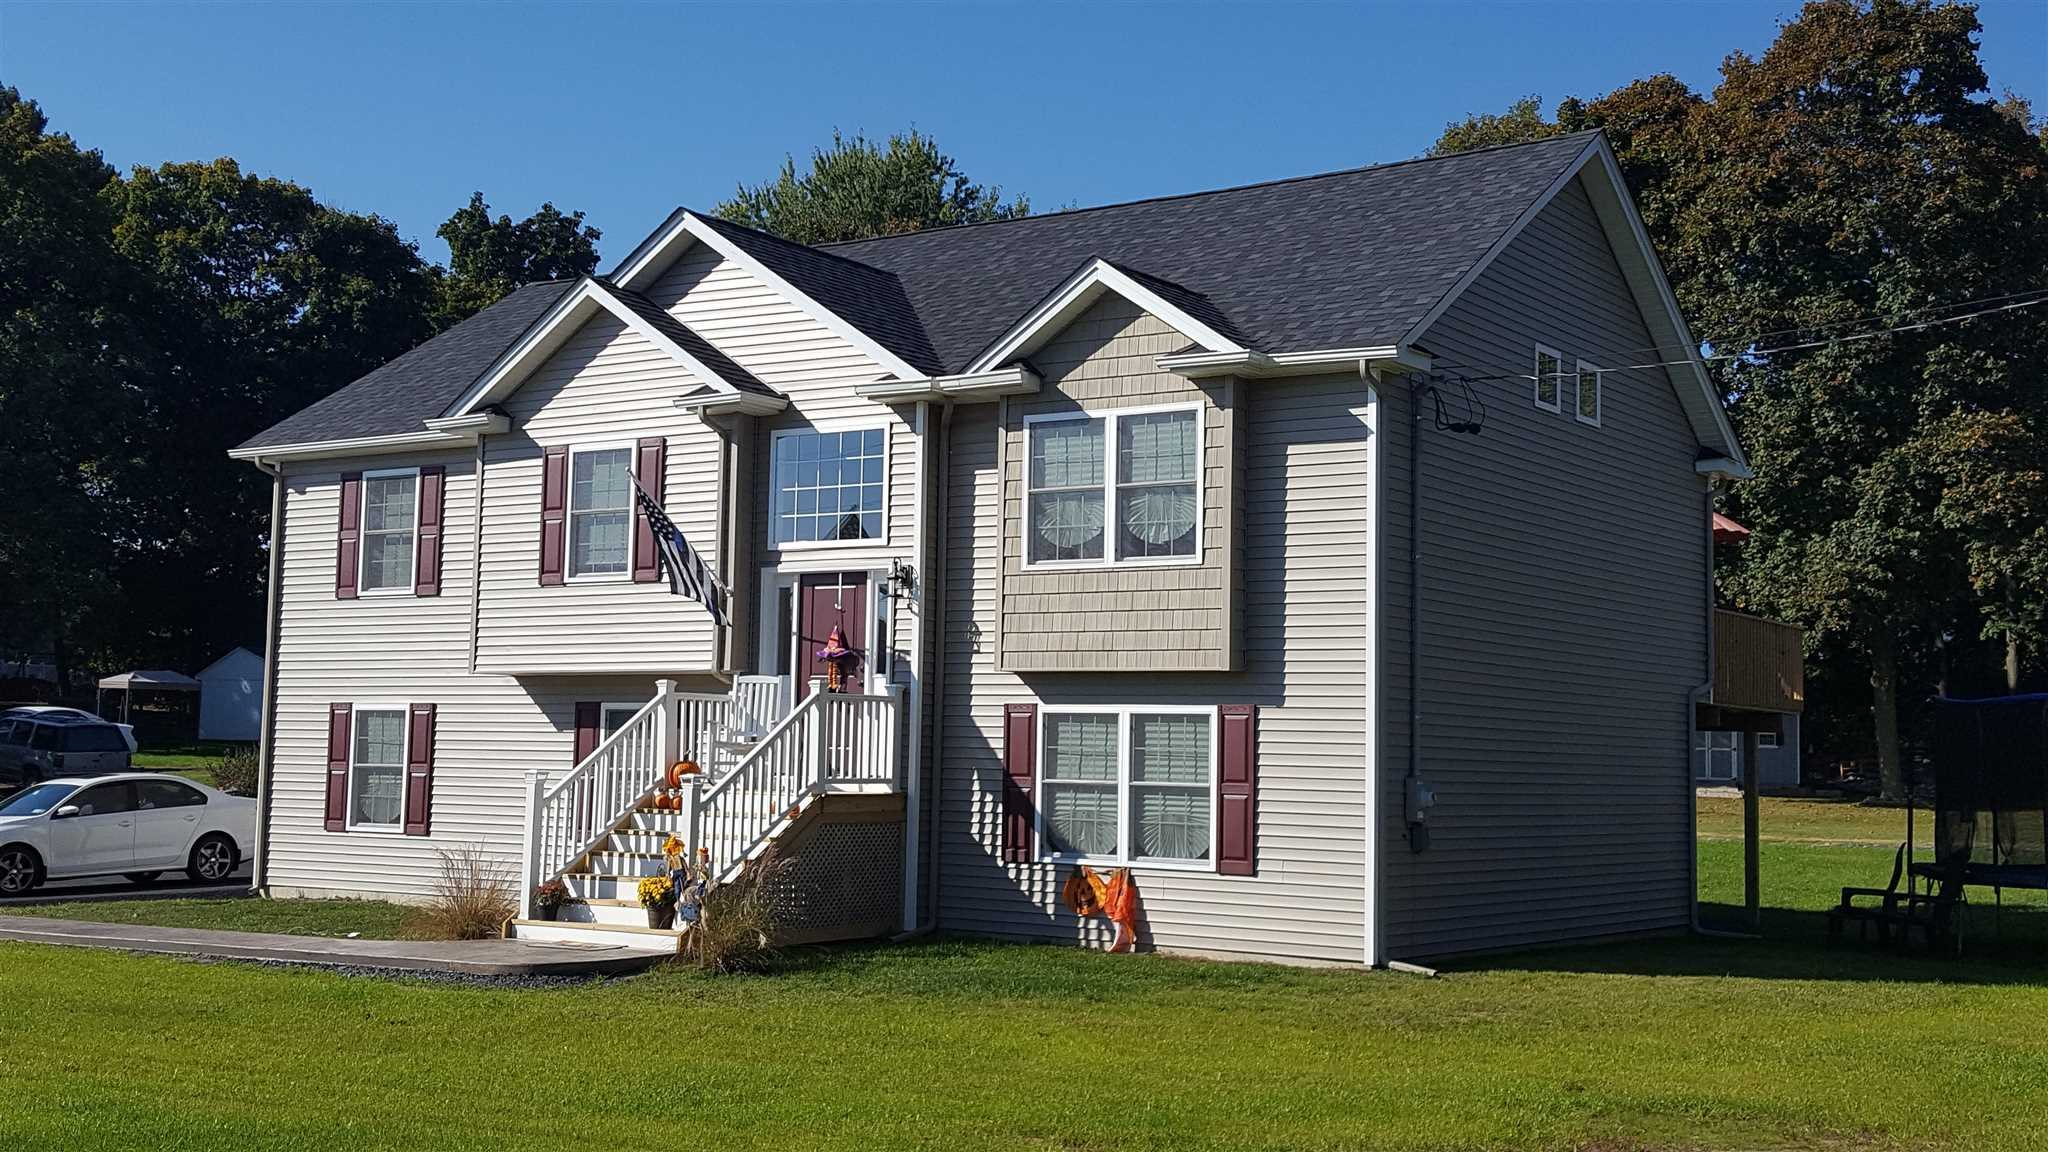 Single Family Home for Sale at 2236 ROUTE 44/55 2236 ROUTE 44/55 Gardiner, New York 12515 United States